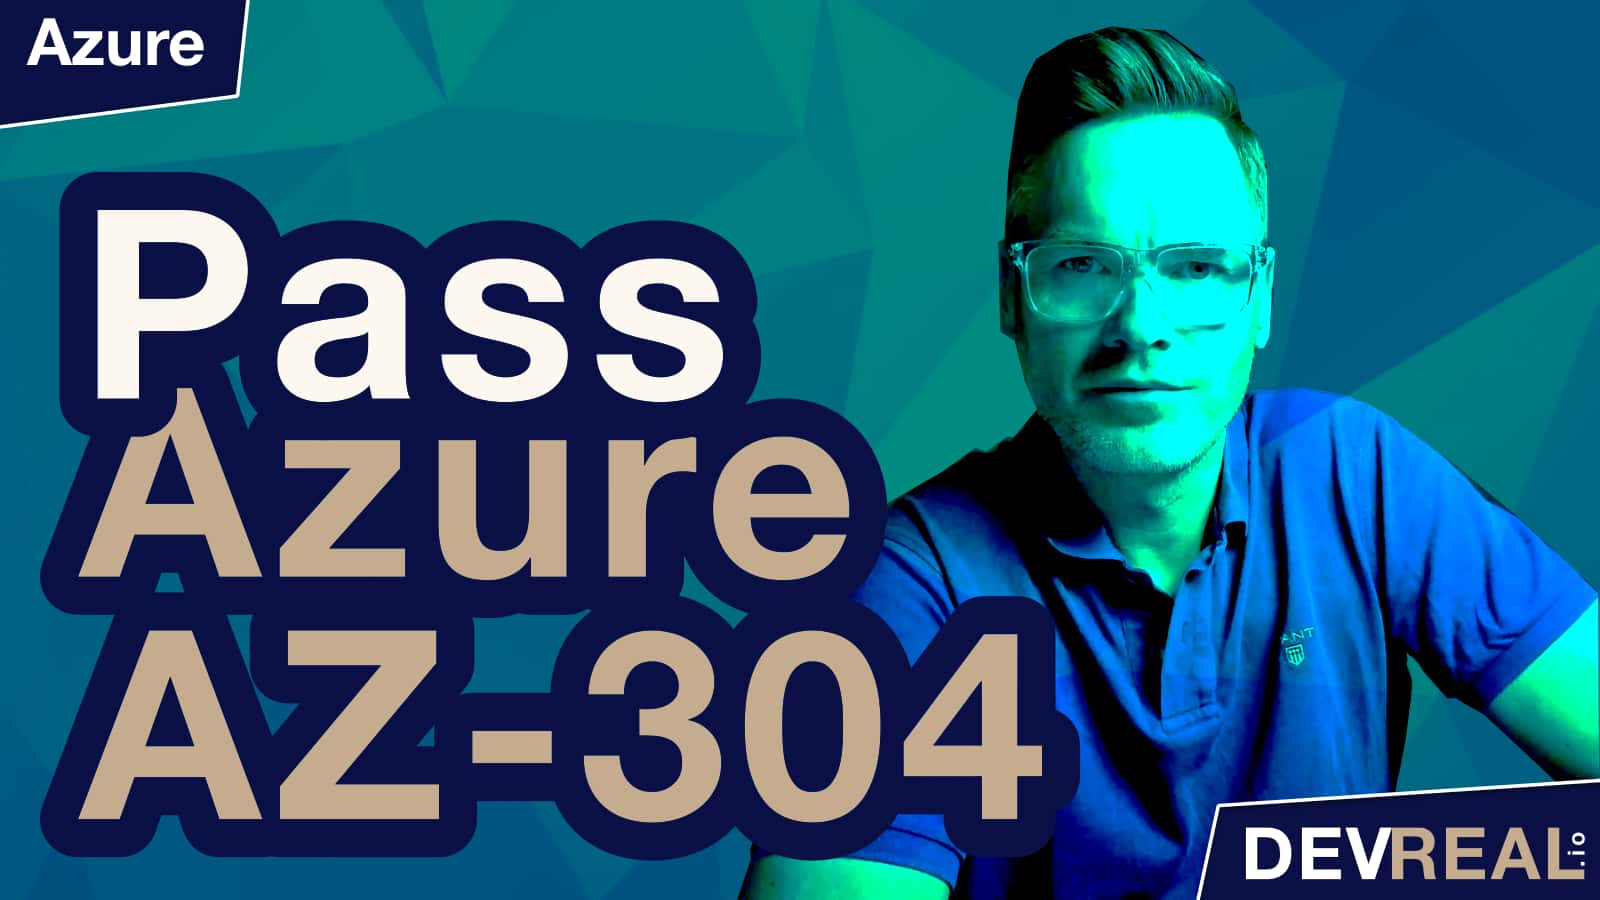 AZ-304 Self-Study Guide for Becoming an Azure Solution Architect Expert